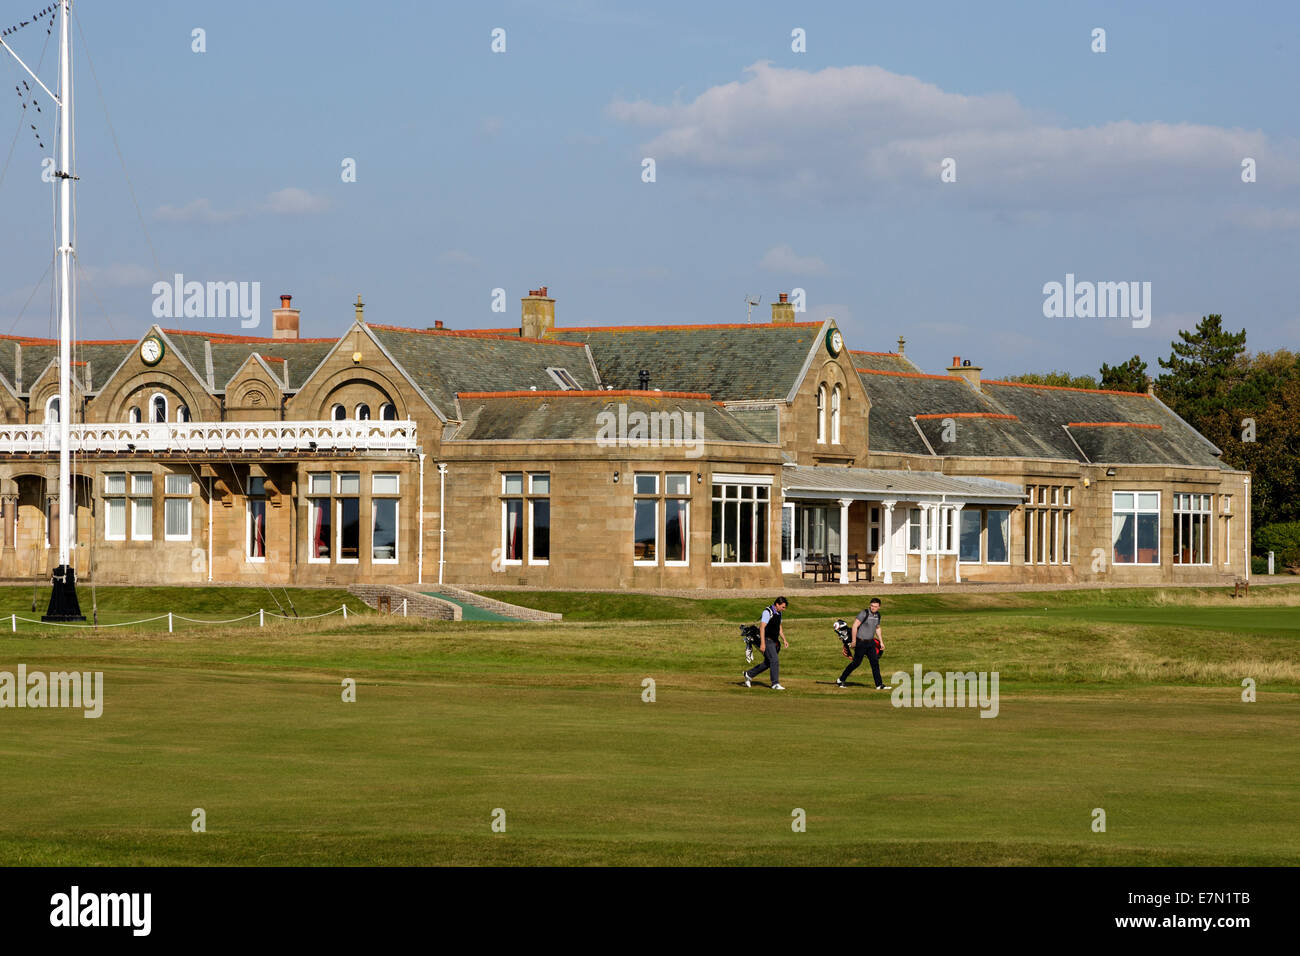 Golfers on the first fairway at Royal troon Golf Club with the clubhouse in the background, troon, Ayrshire, Scotland, - Stock Image